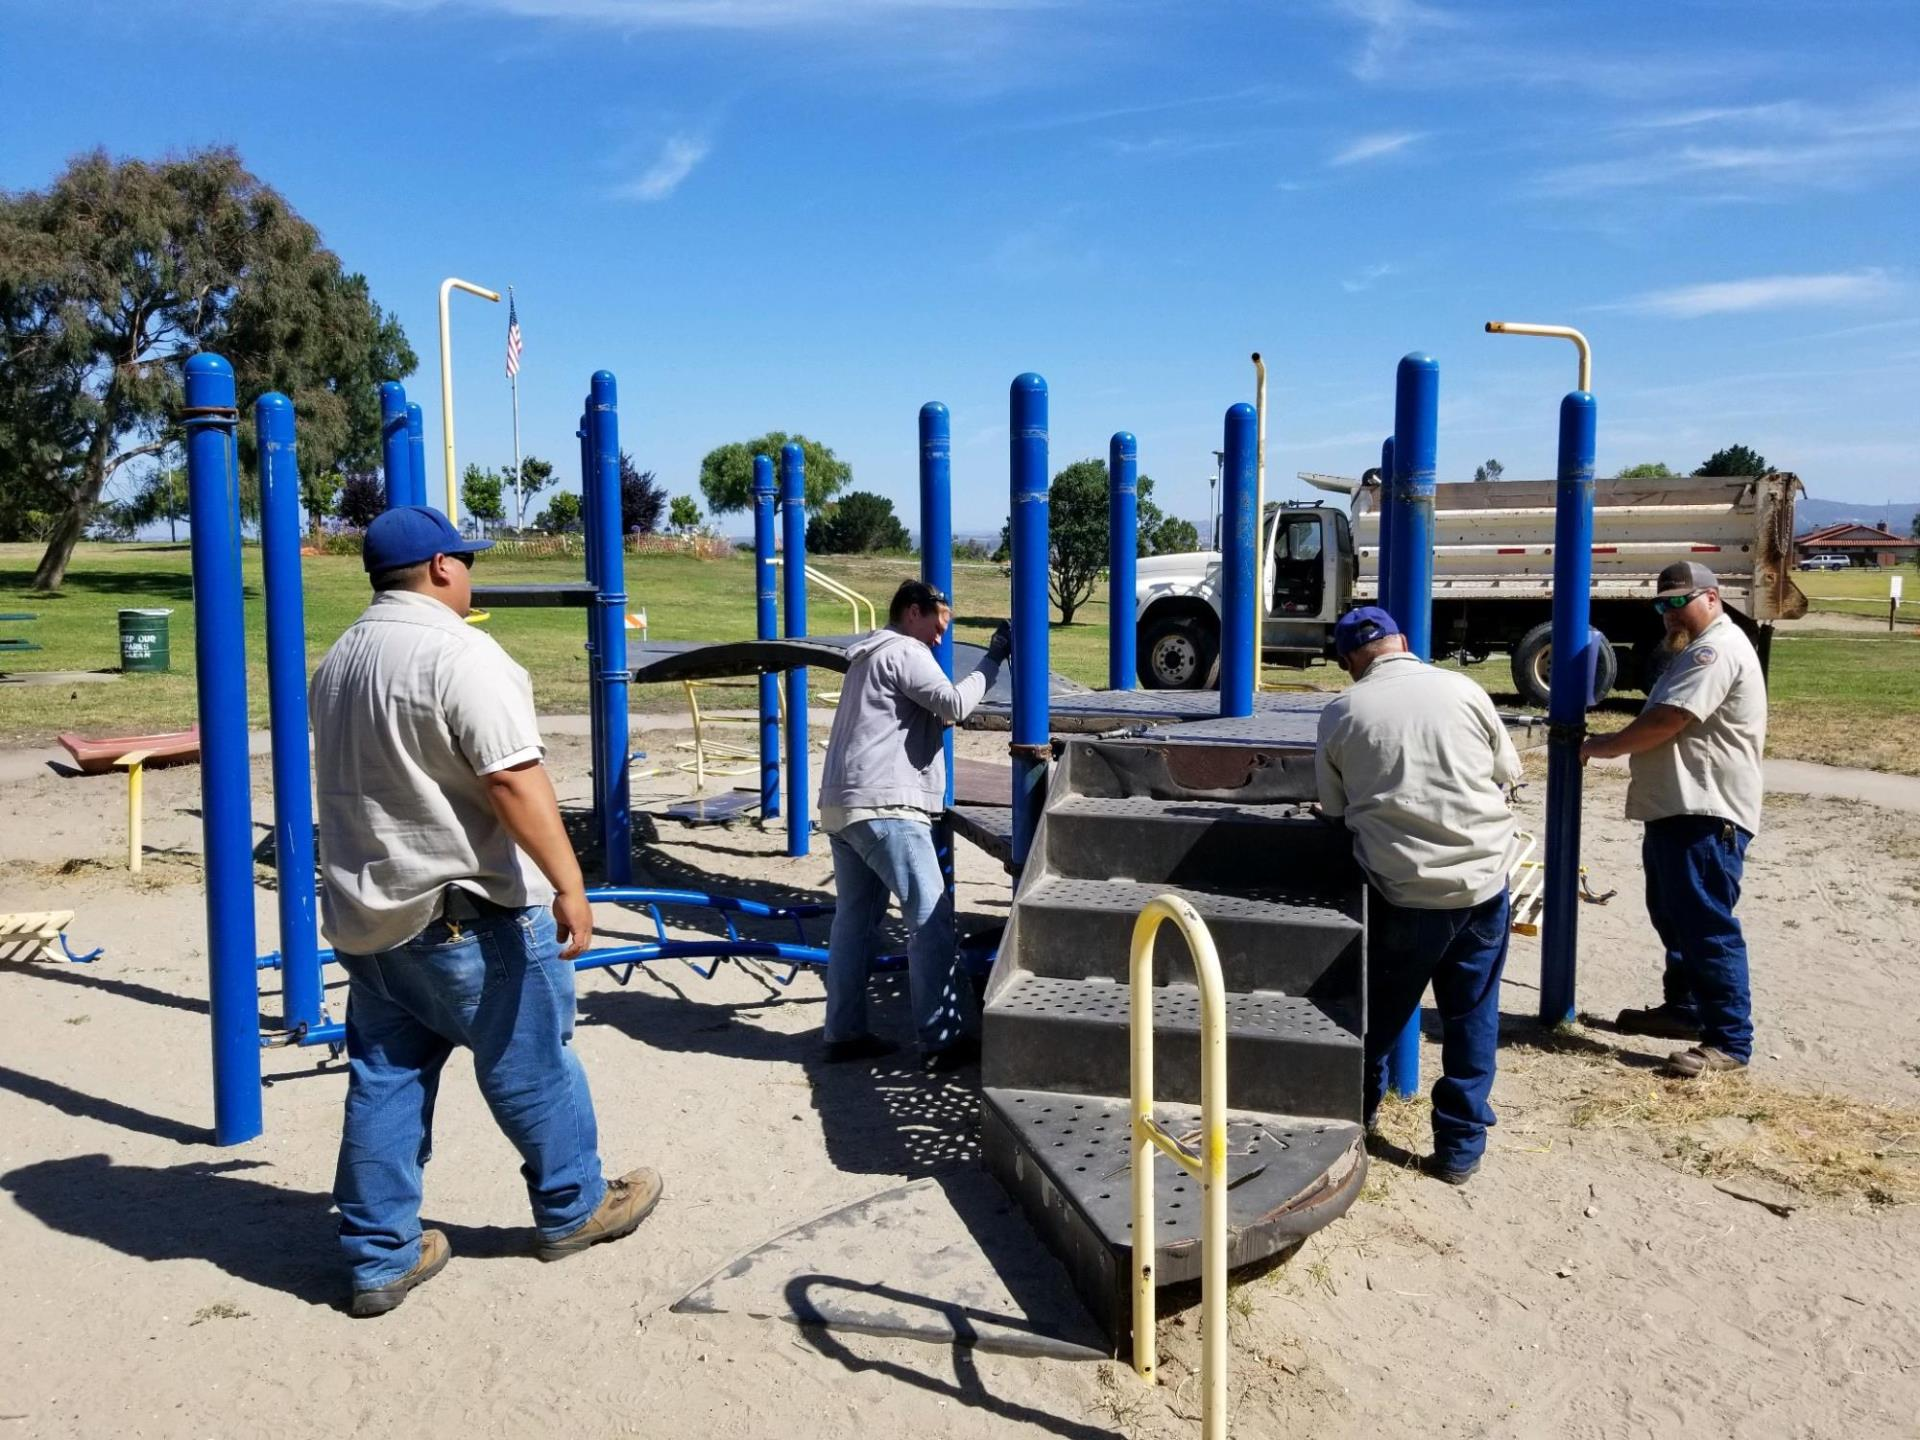 What Do You Want For Lompoc Parks?